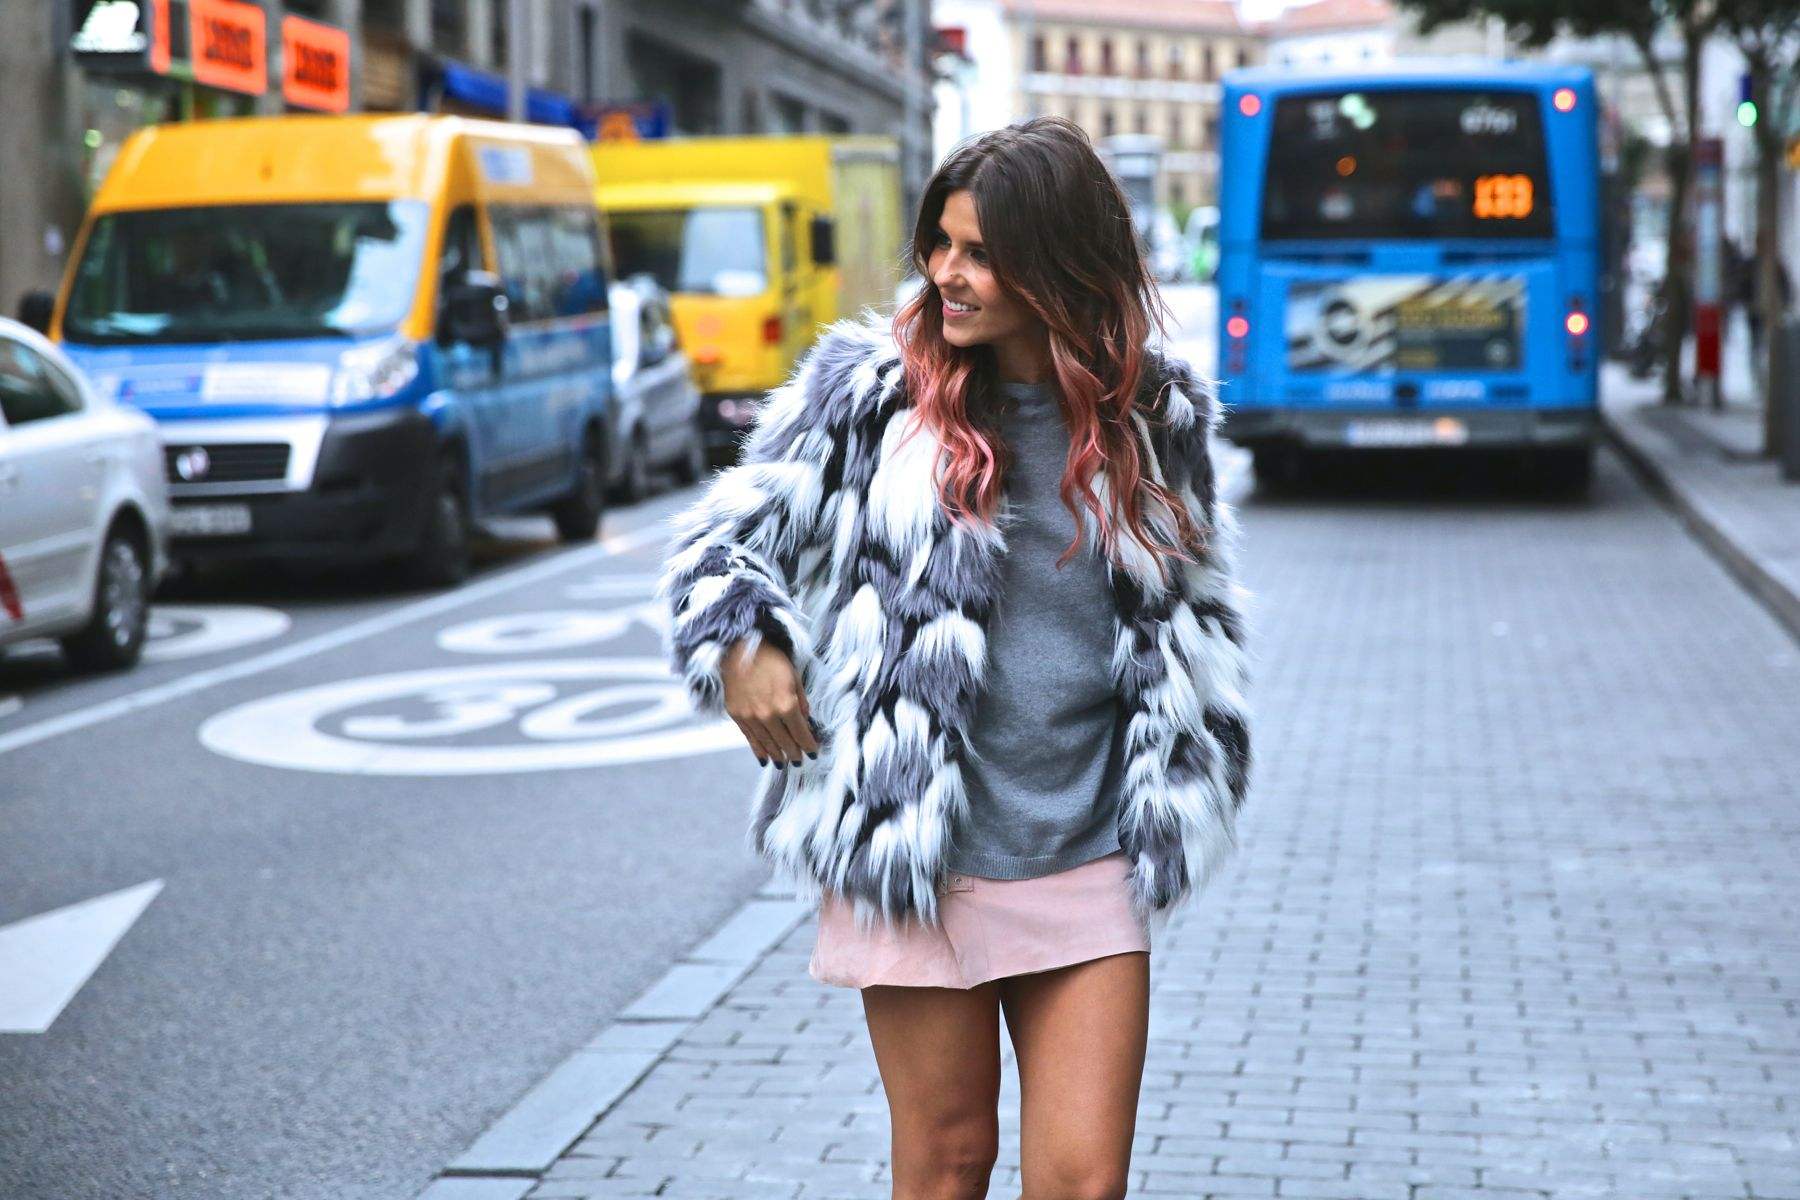 trendy_taste-look-outfit-street_style-ootd-blog-blogger-fashion_spain-moda_españa-falda_rosa-pink_skirt-abrigo_pelo-leather-piel-biker_boots-botas_moteras-rock-ghd-aecc-6